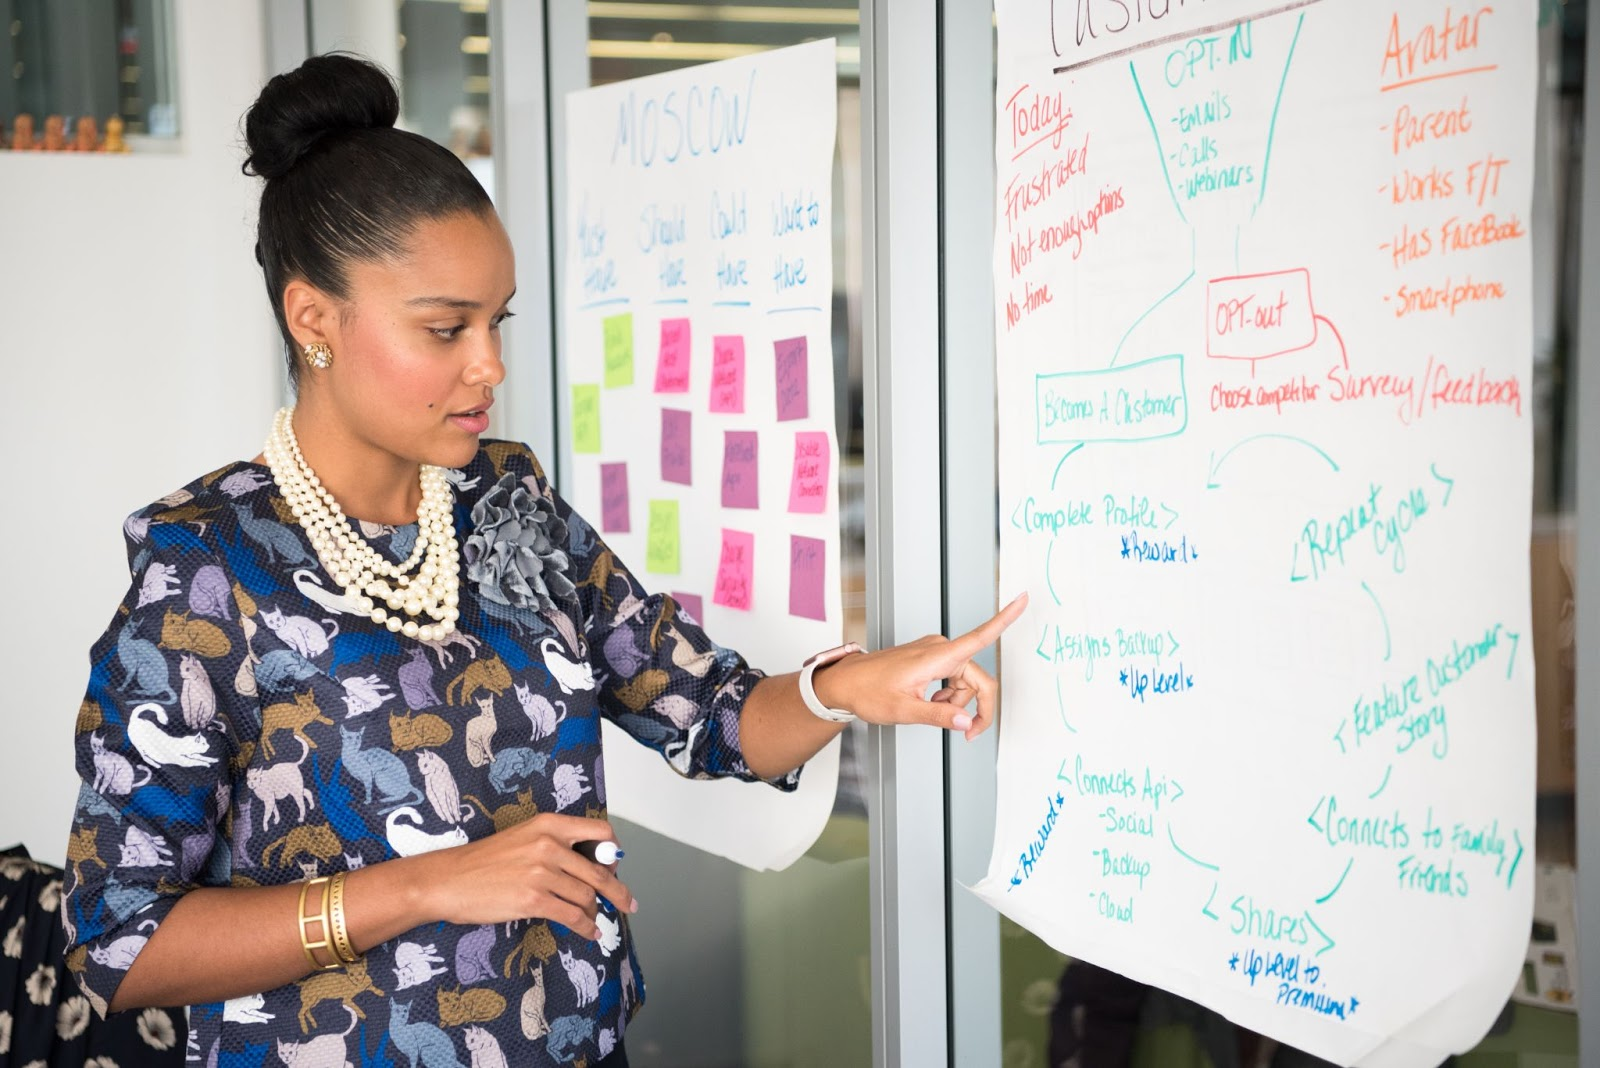 A manager pointing at a brainstorm board